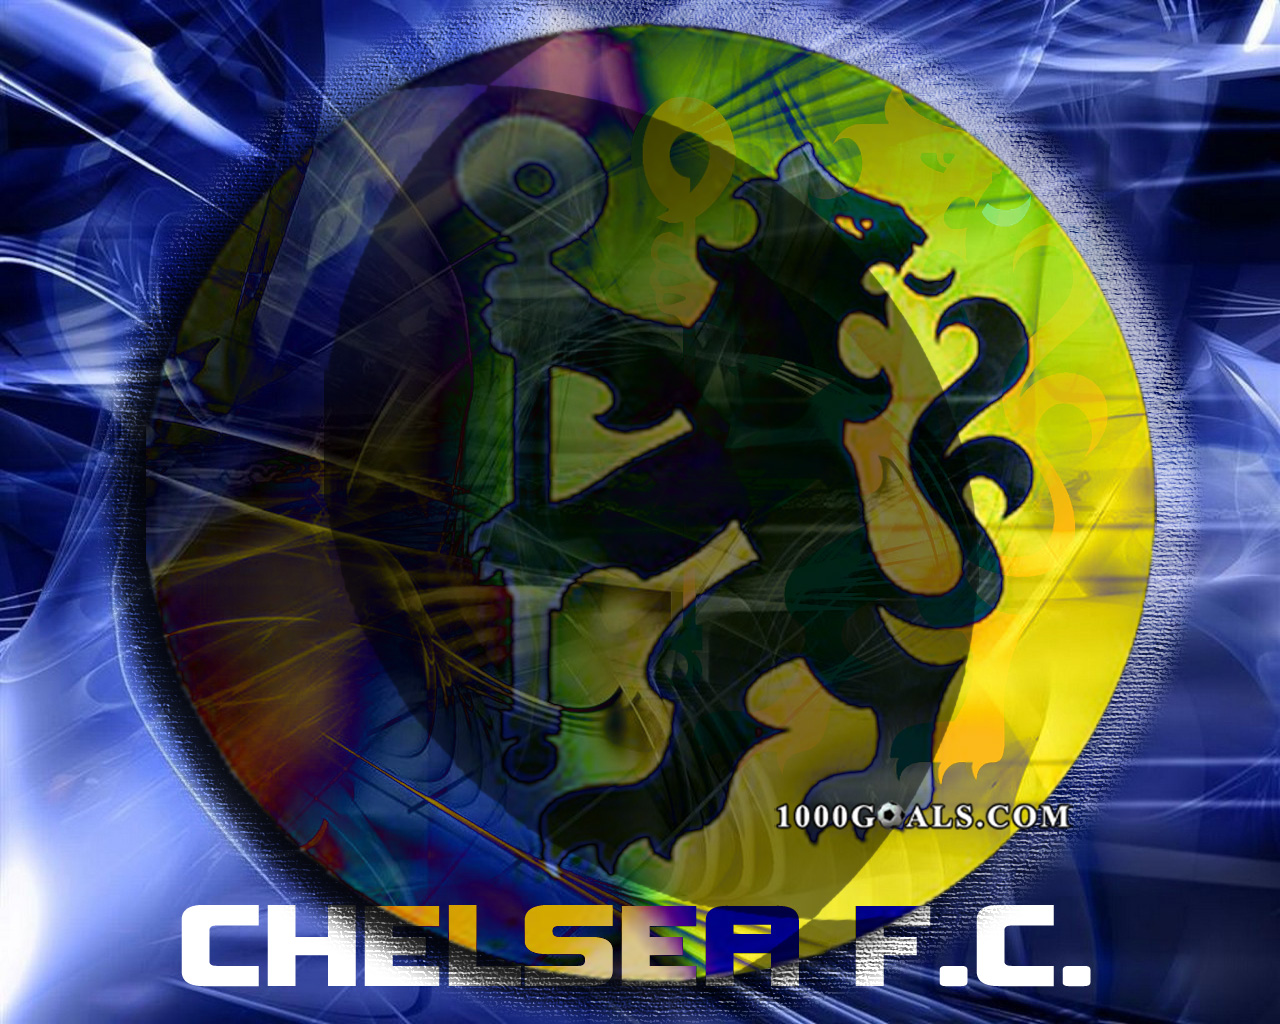 Papel De Parede Do Chelseadesktop Backgrounds Wallpapers Screensaver